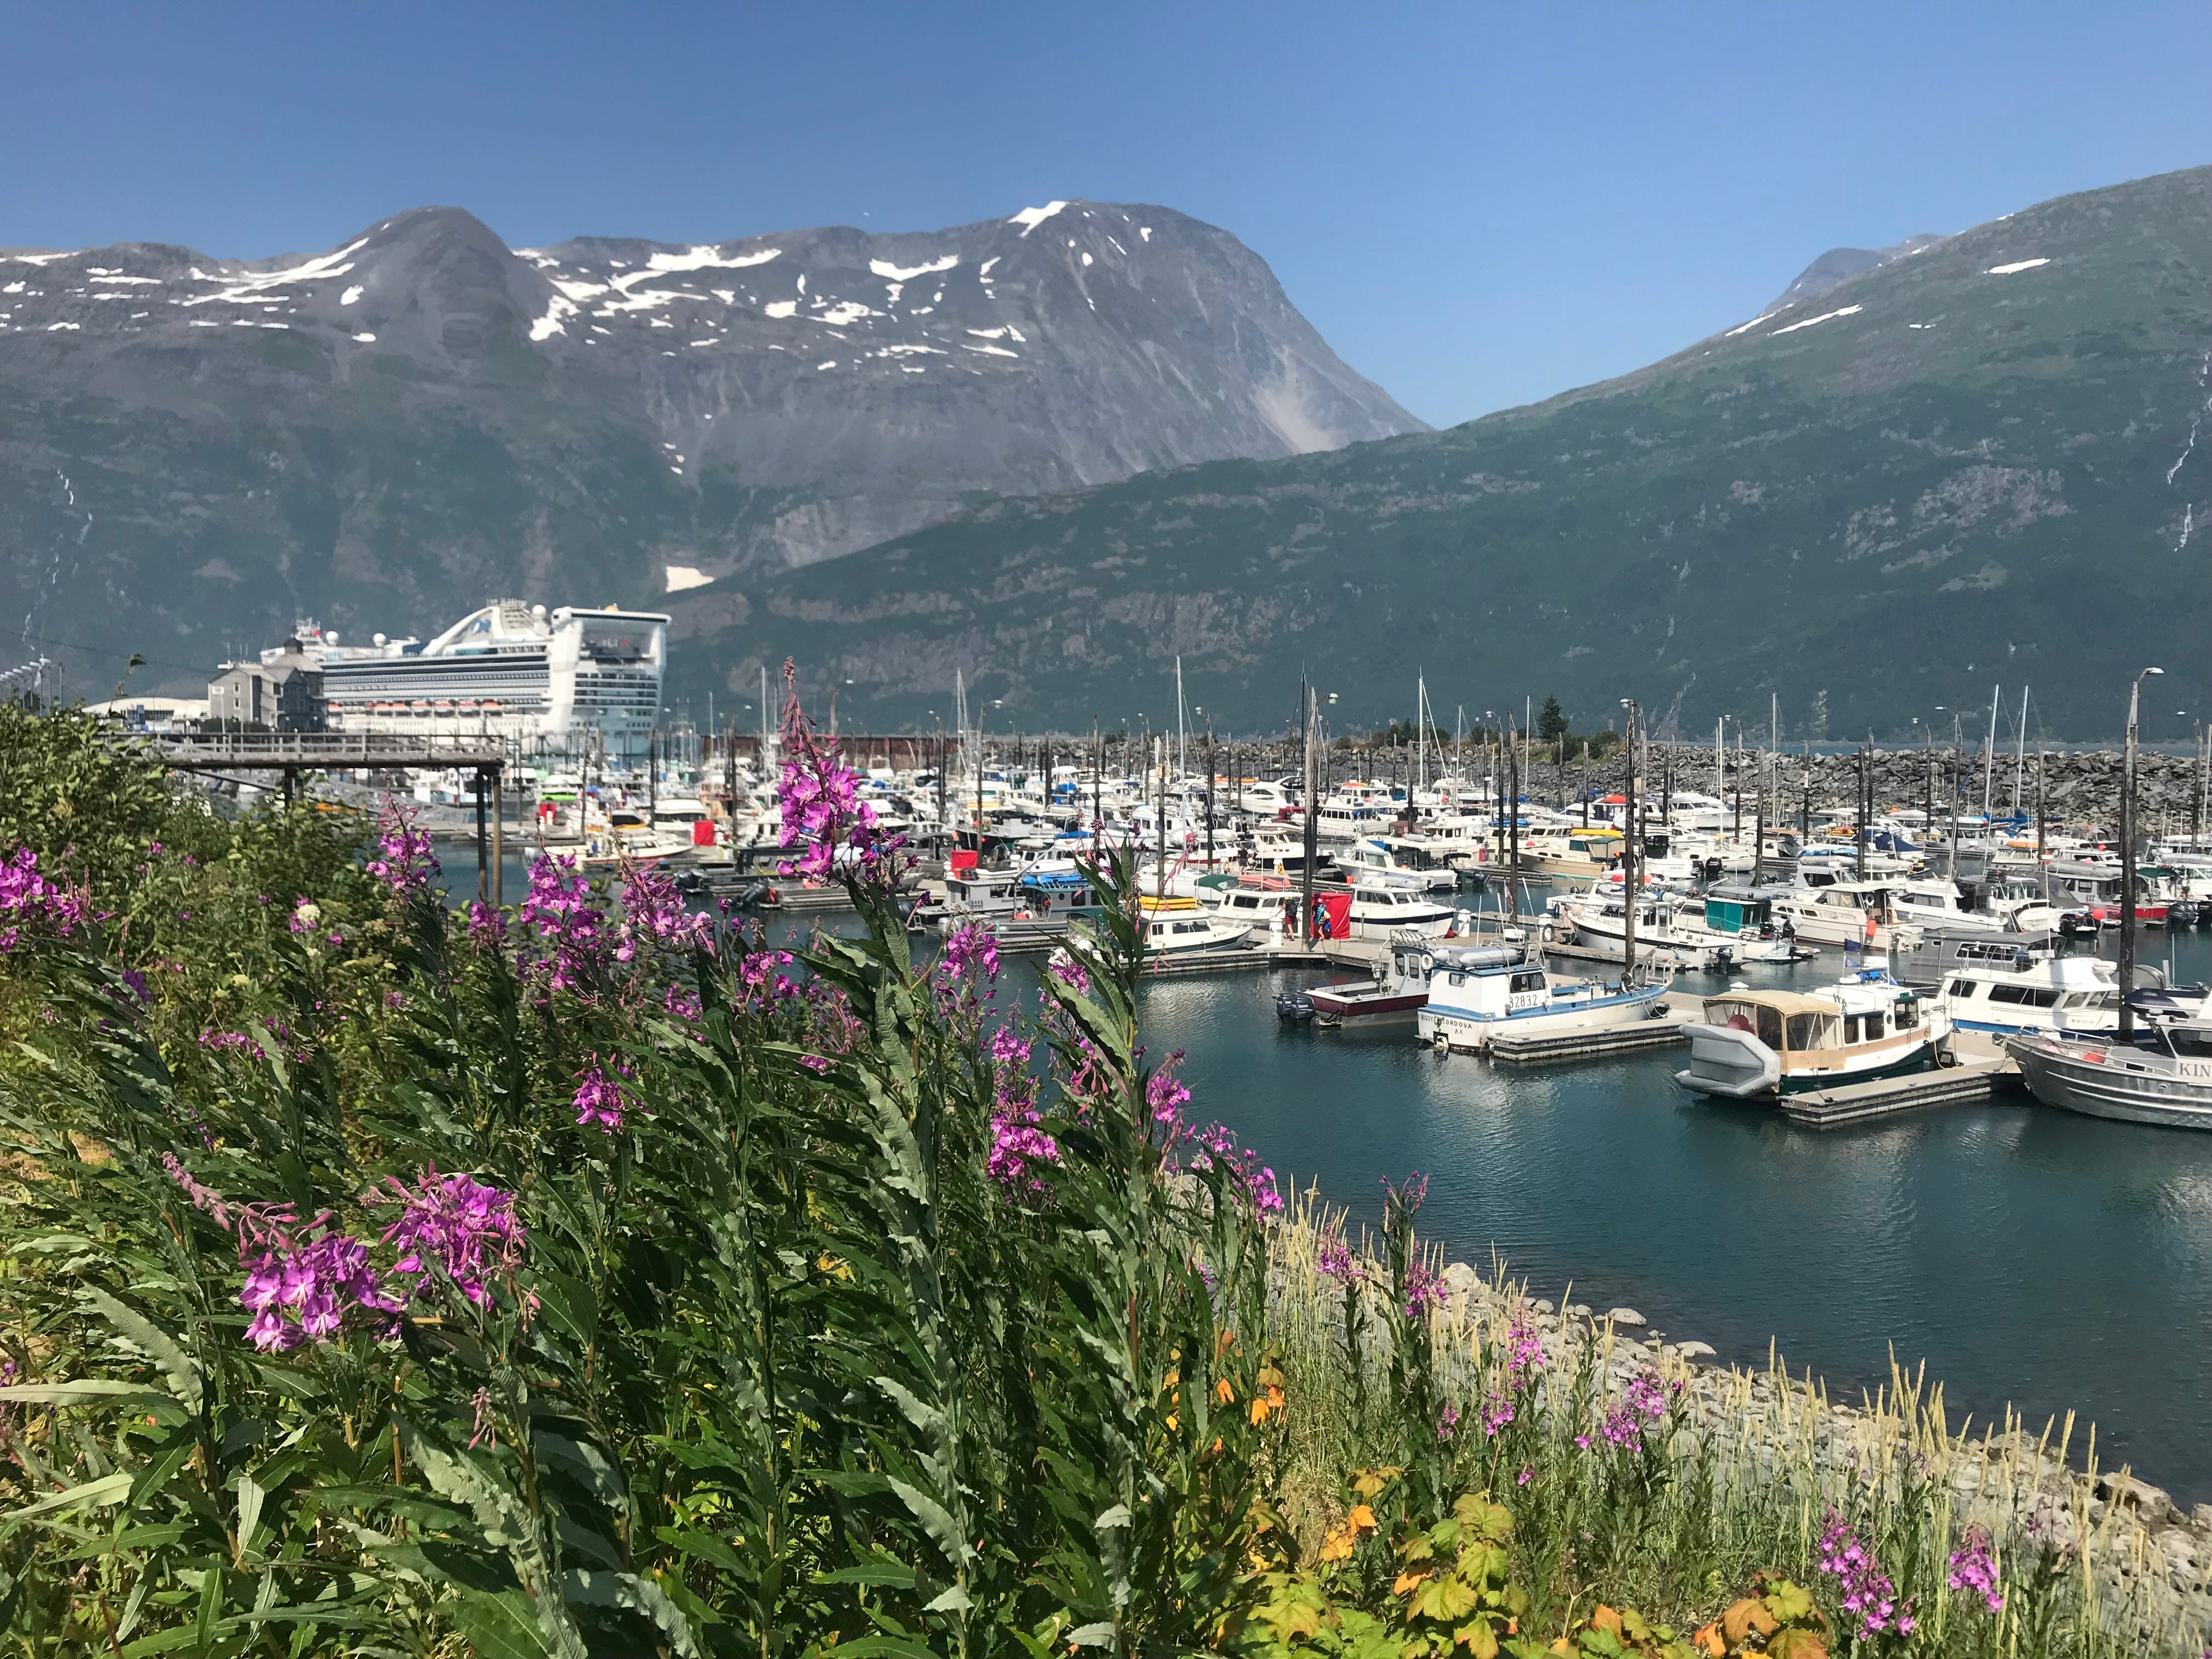 Tiny TikTok town: How almost everyone in Whittier, Alaska lives under one roof